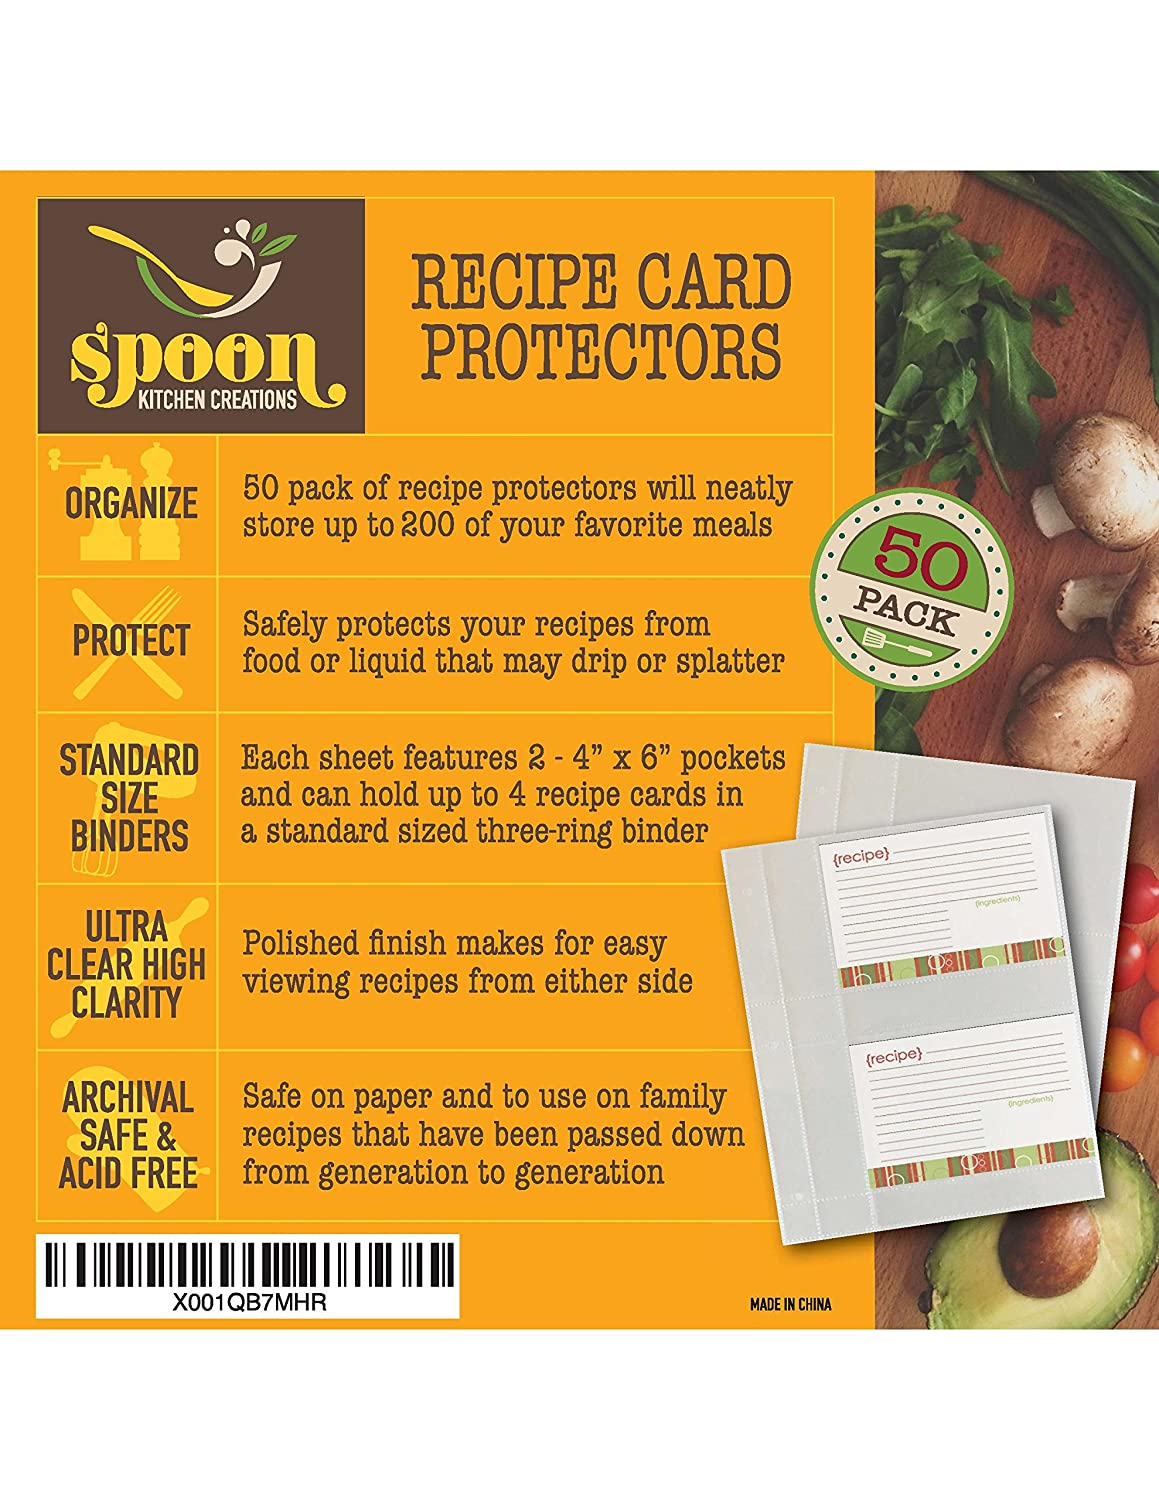 Recipe Card Protectors, Refill Sheets, 50 Pack, Clear, 2 Cards Per Sheet Toucan Craft Supplies